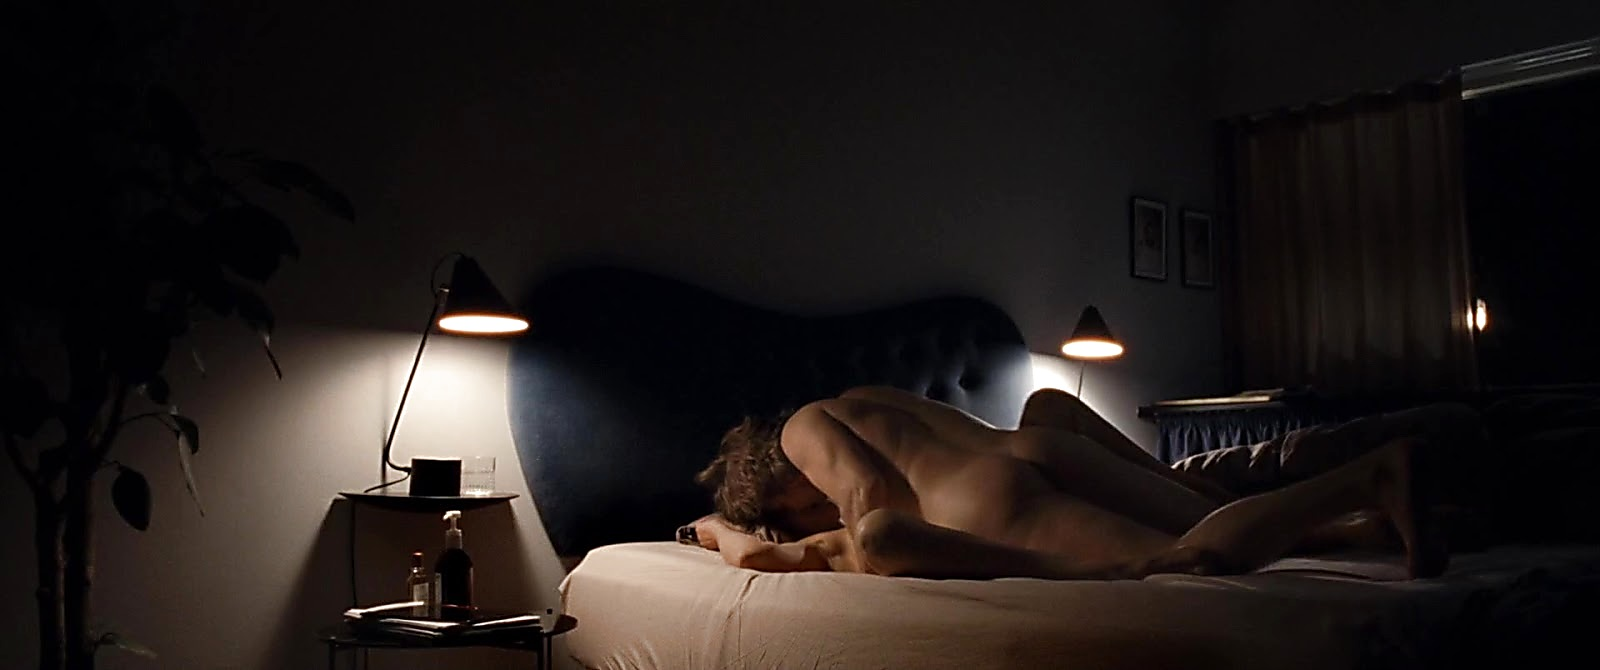 Magnus Krepper sexy shirtless scene September 8, 2019, 12pm